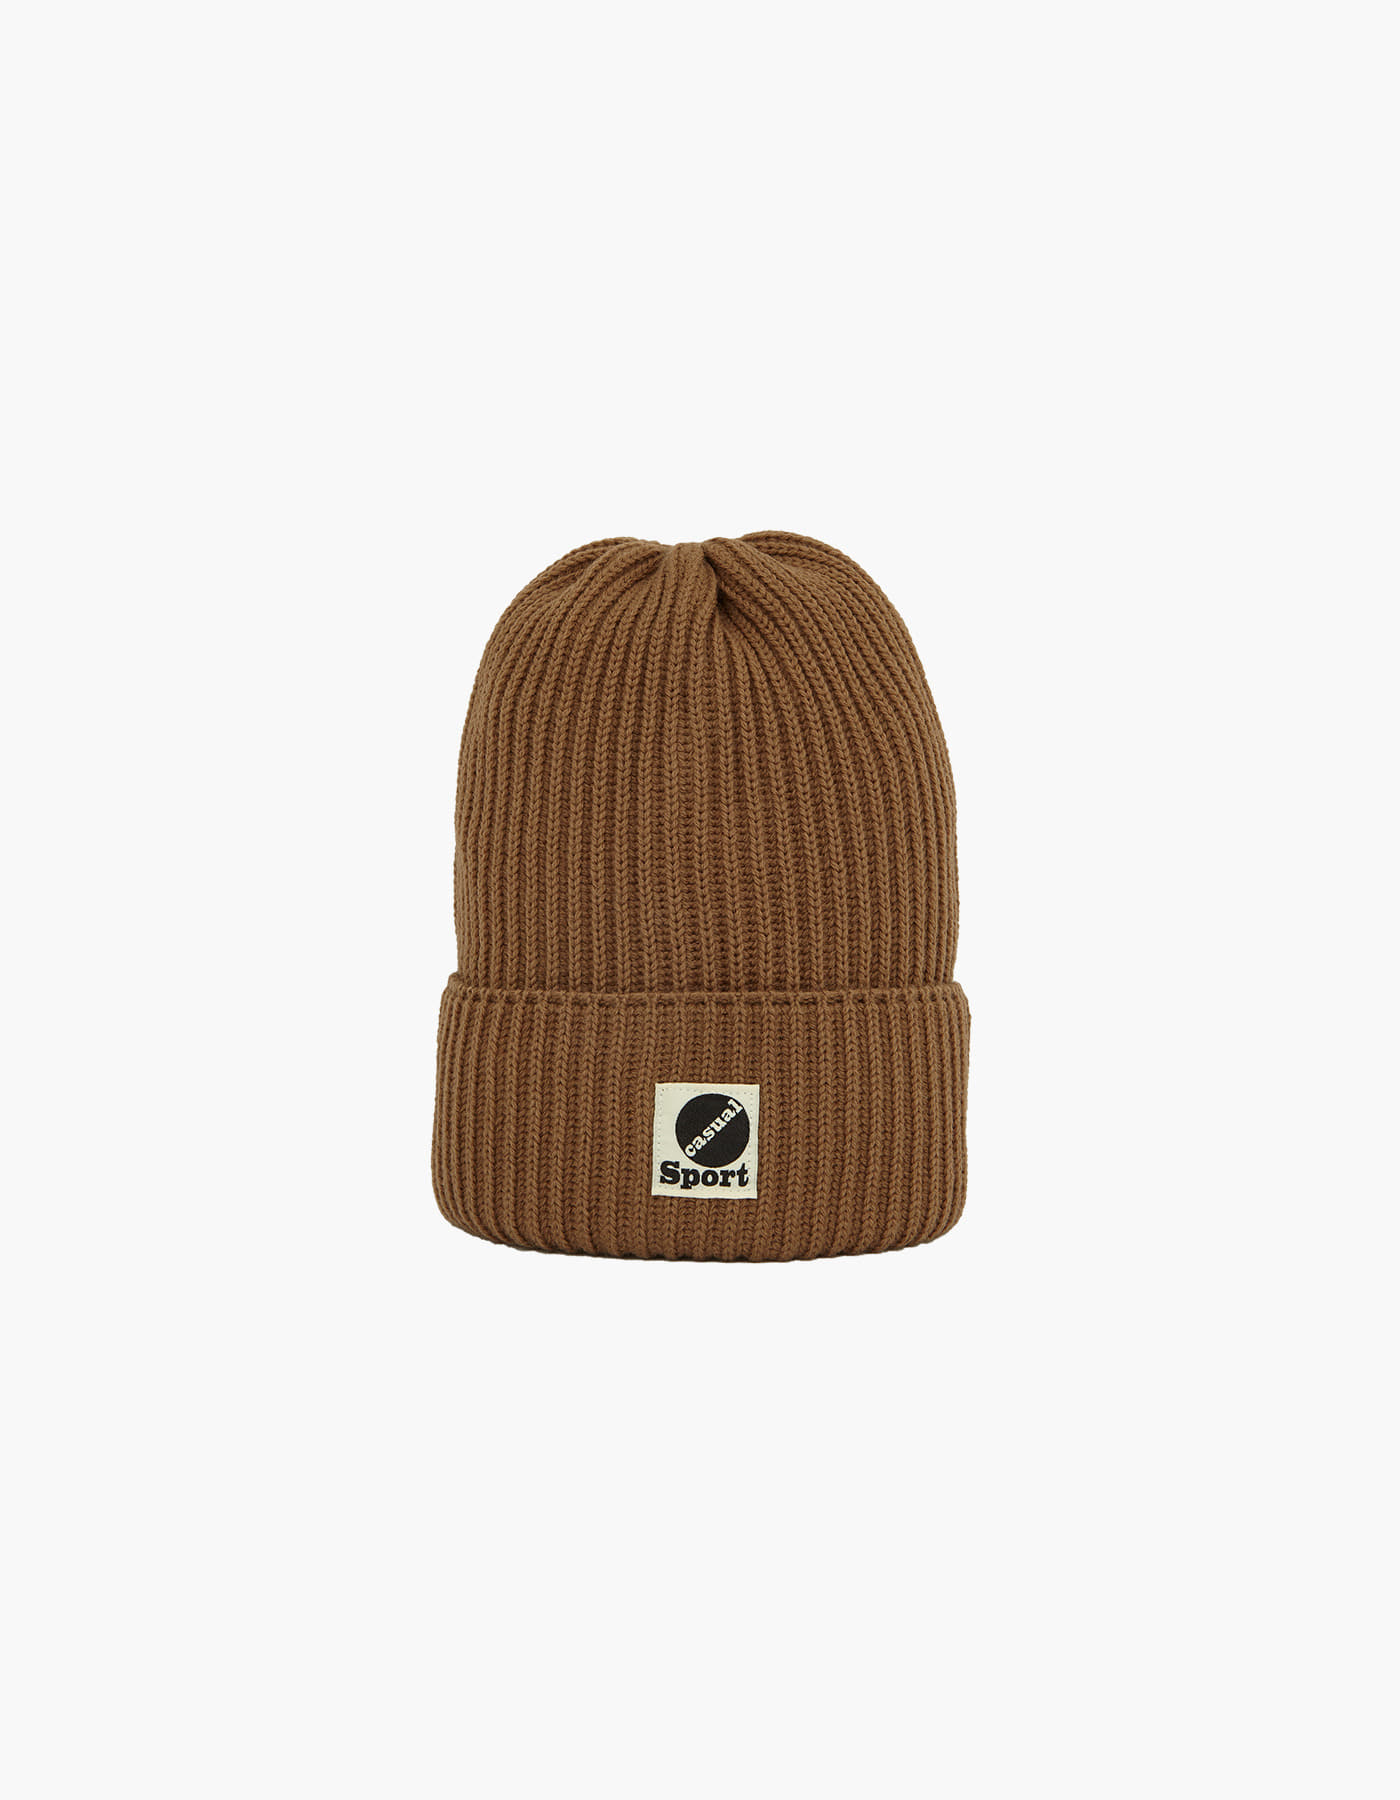 WOOL BEANIE / BROWN